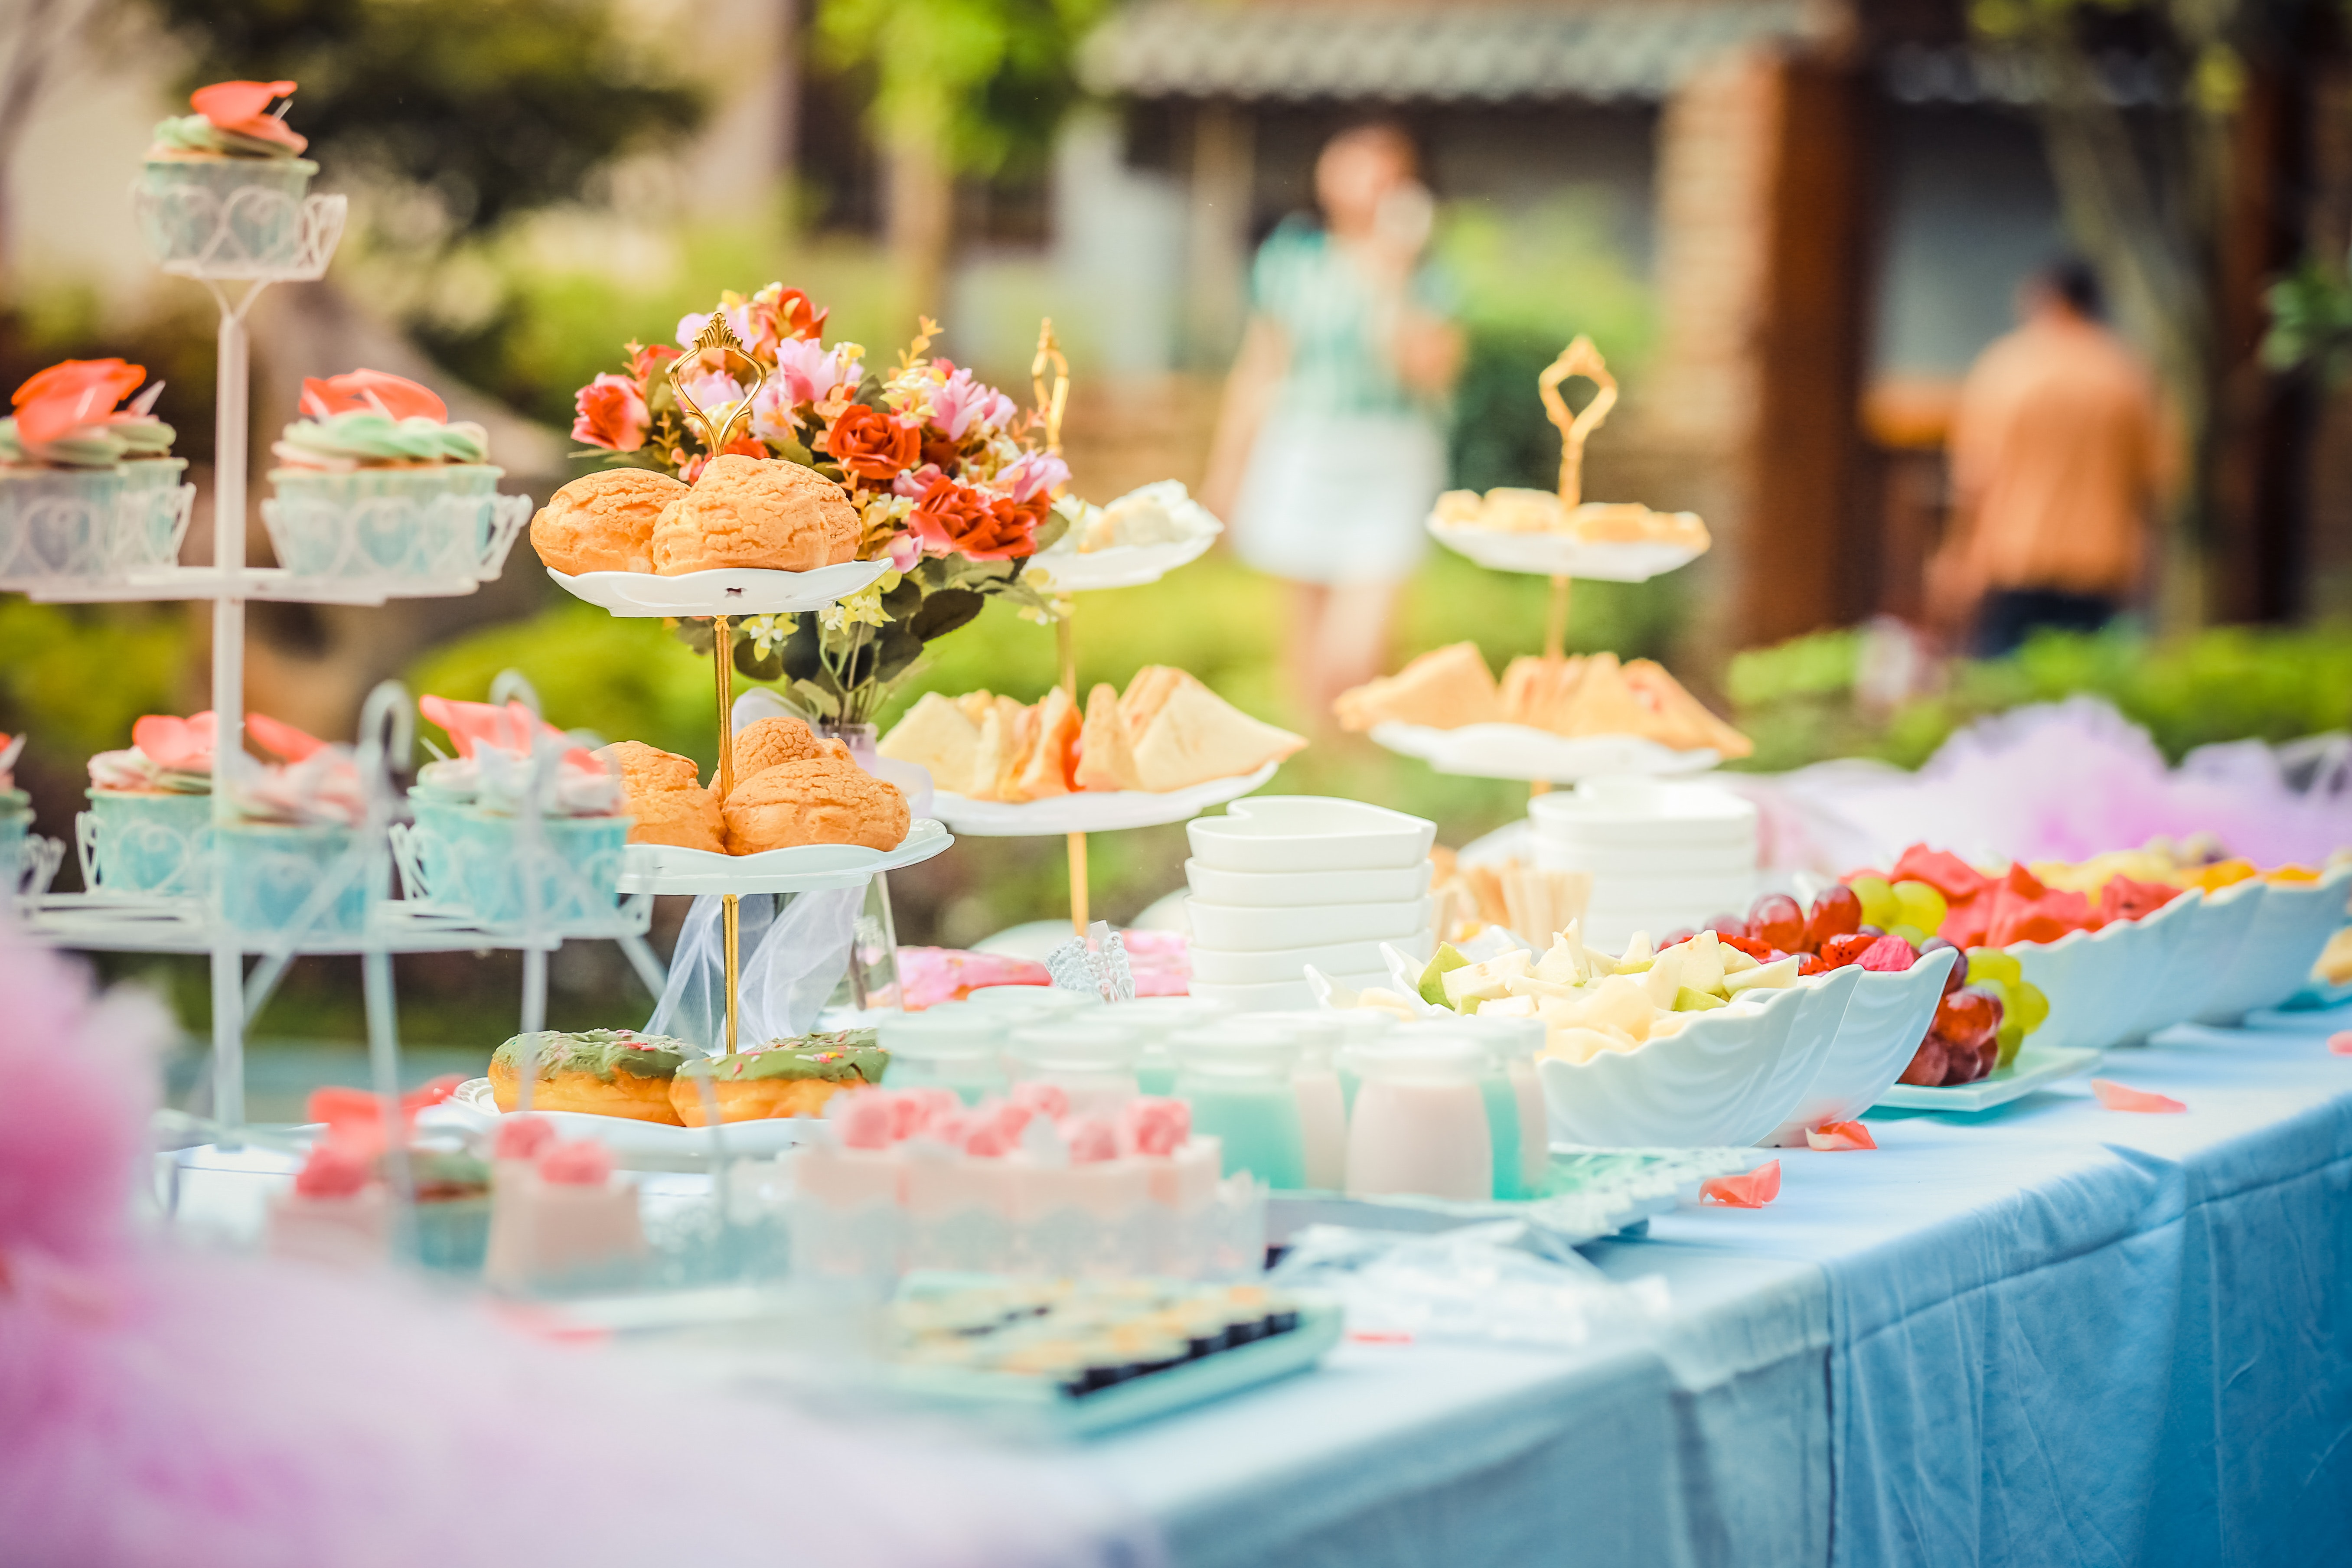 How to start a catering business in India through Swarit Advisors